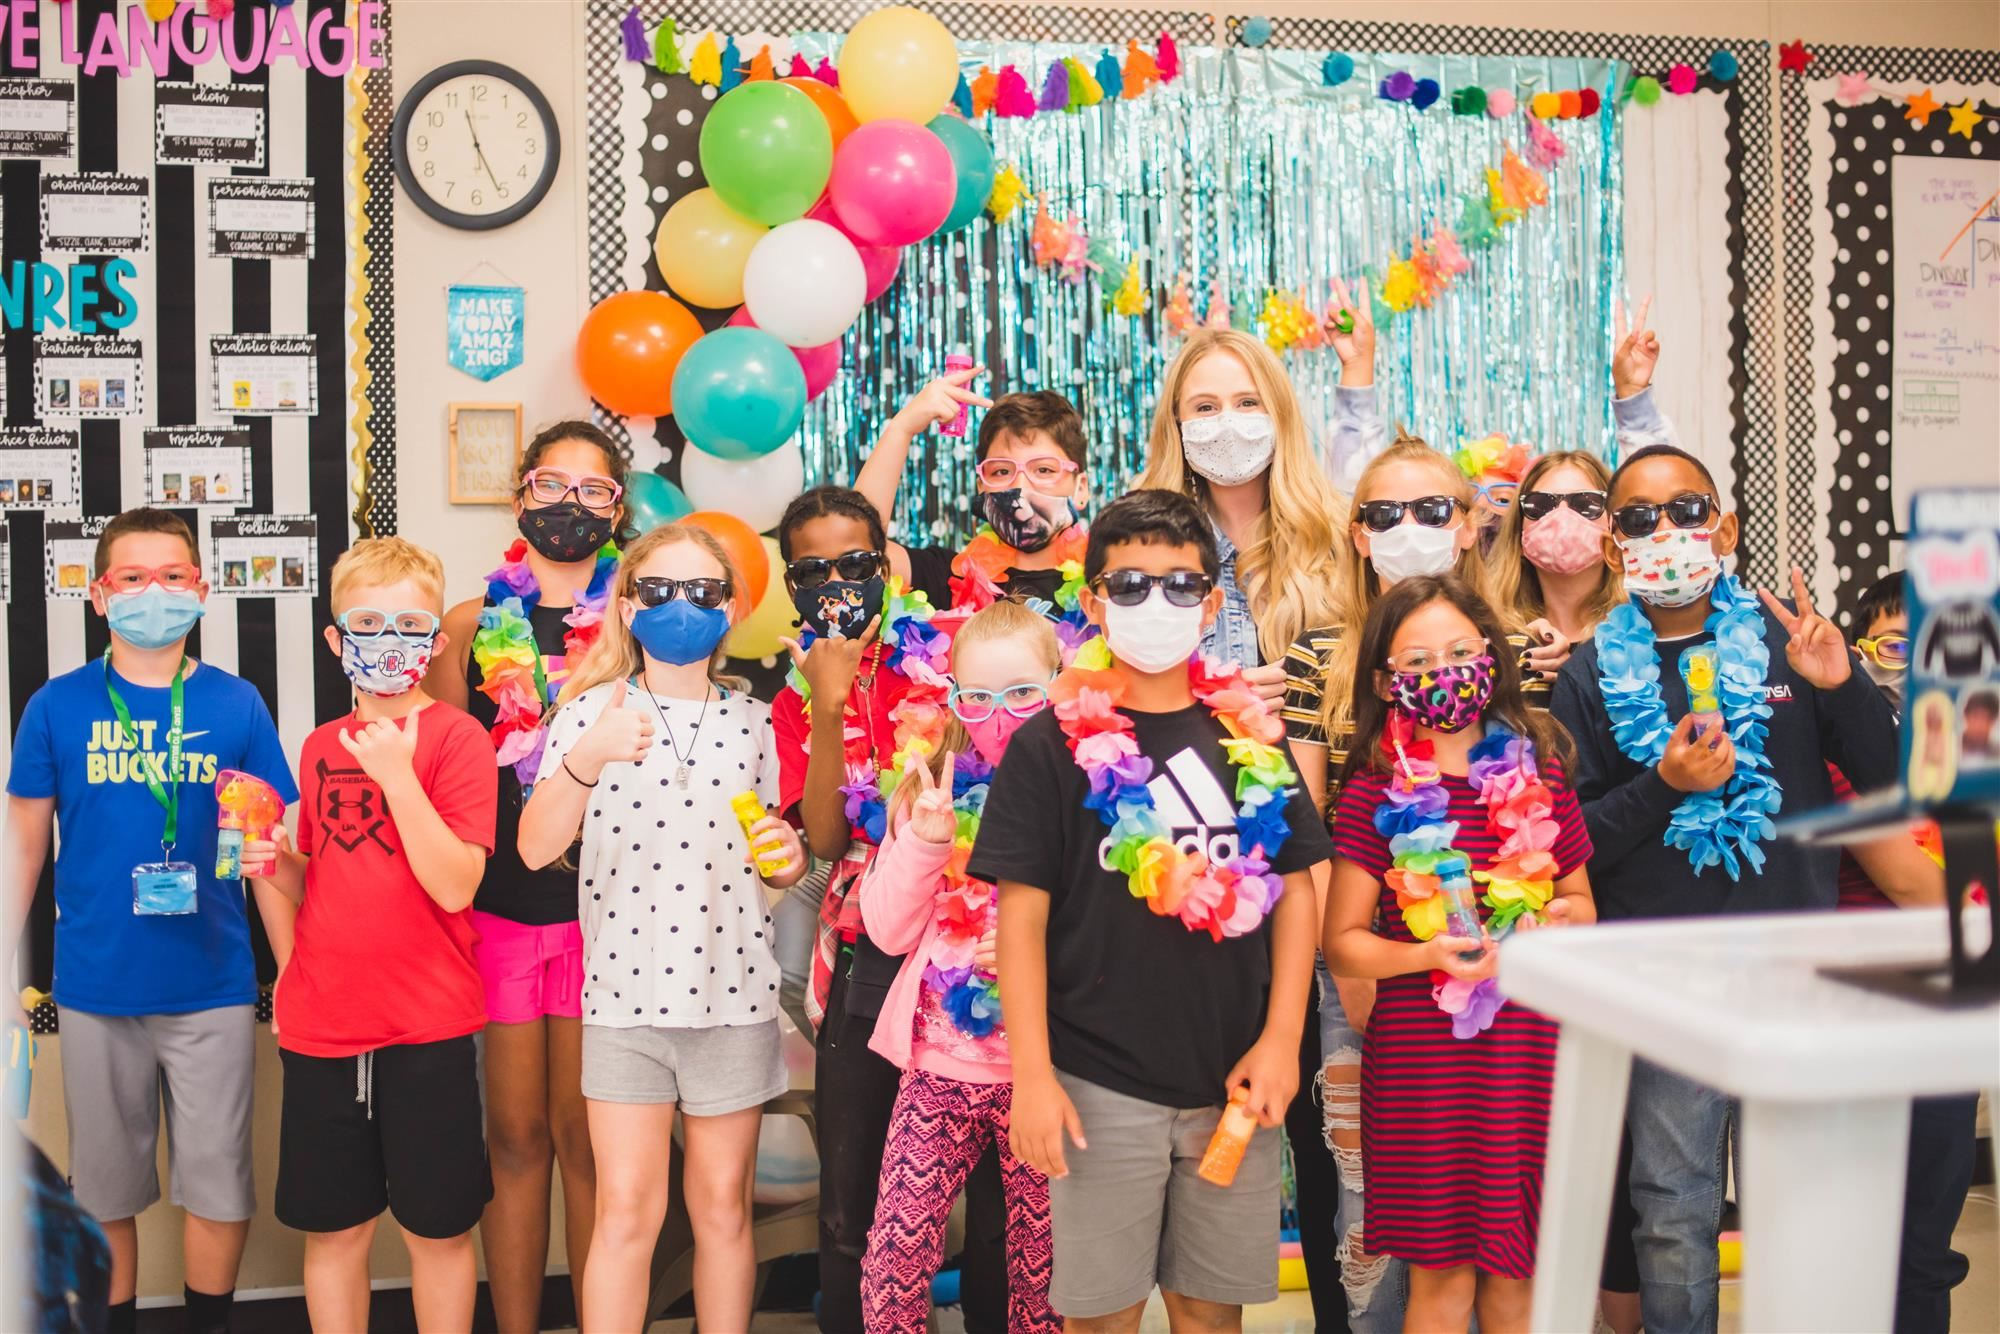 Fairchild's class smiles for group photo in masks